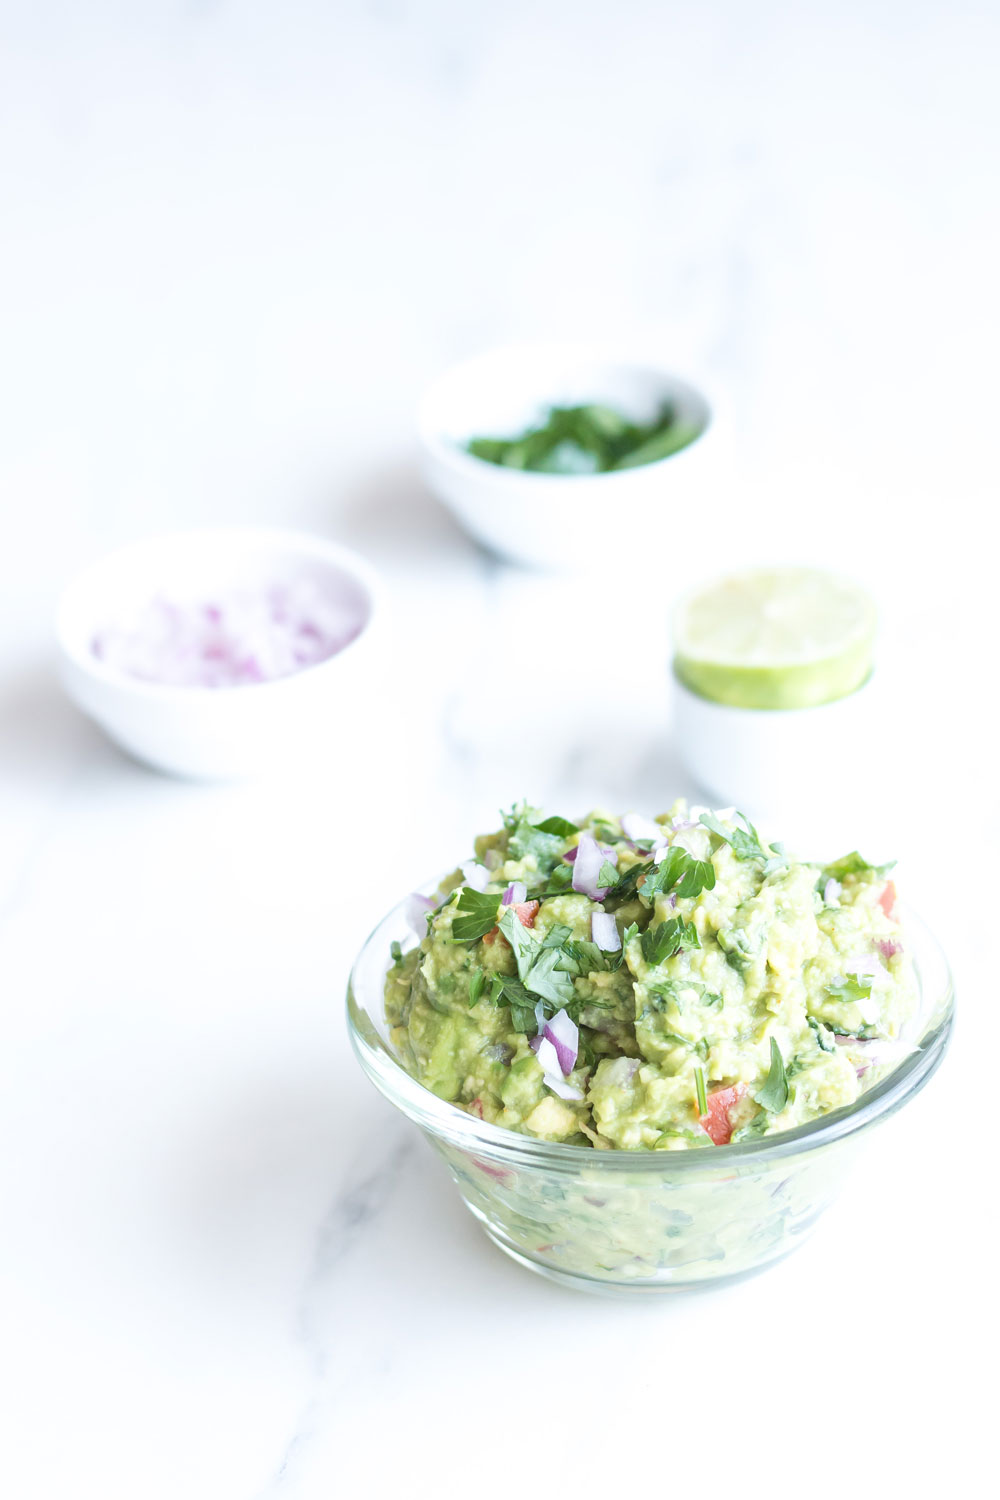 Perfect Chunky Guacamole Recipe: Full of healthy fats, nutrients, and calorie conscious! https://www.spotebi.com/recipes/perfect-chunky-guacamole/